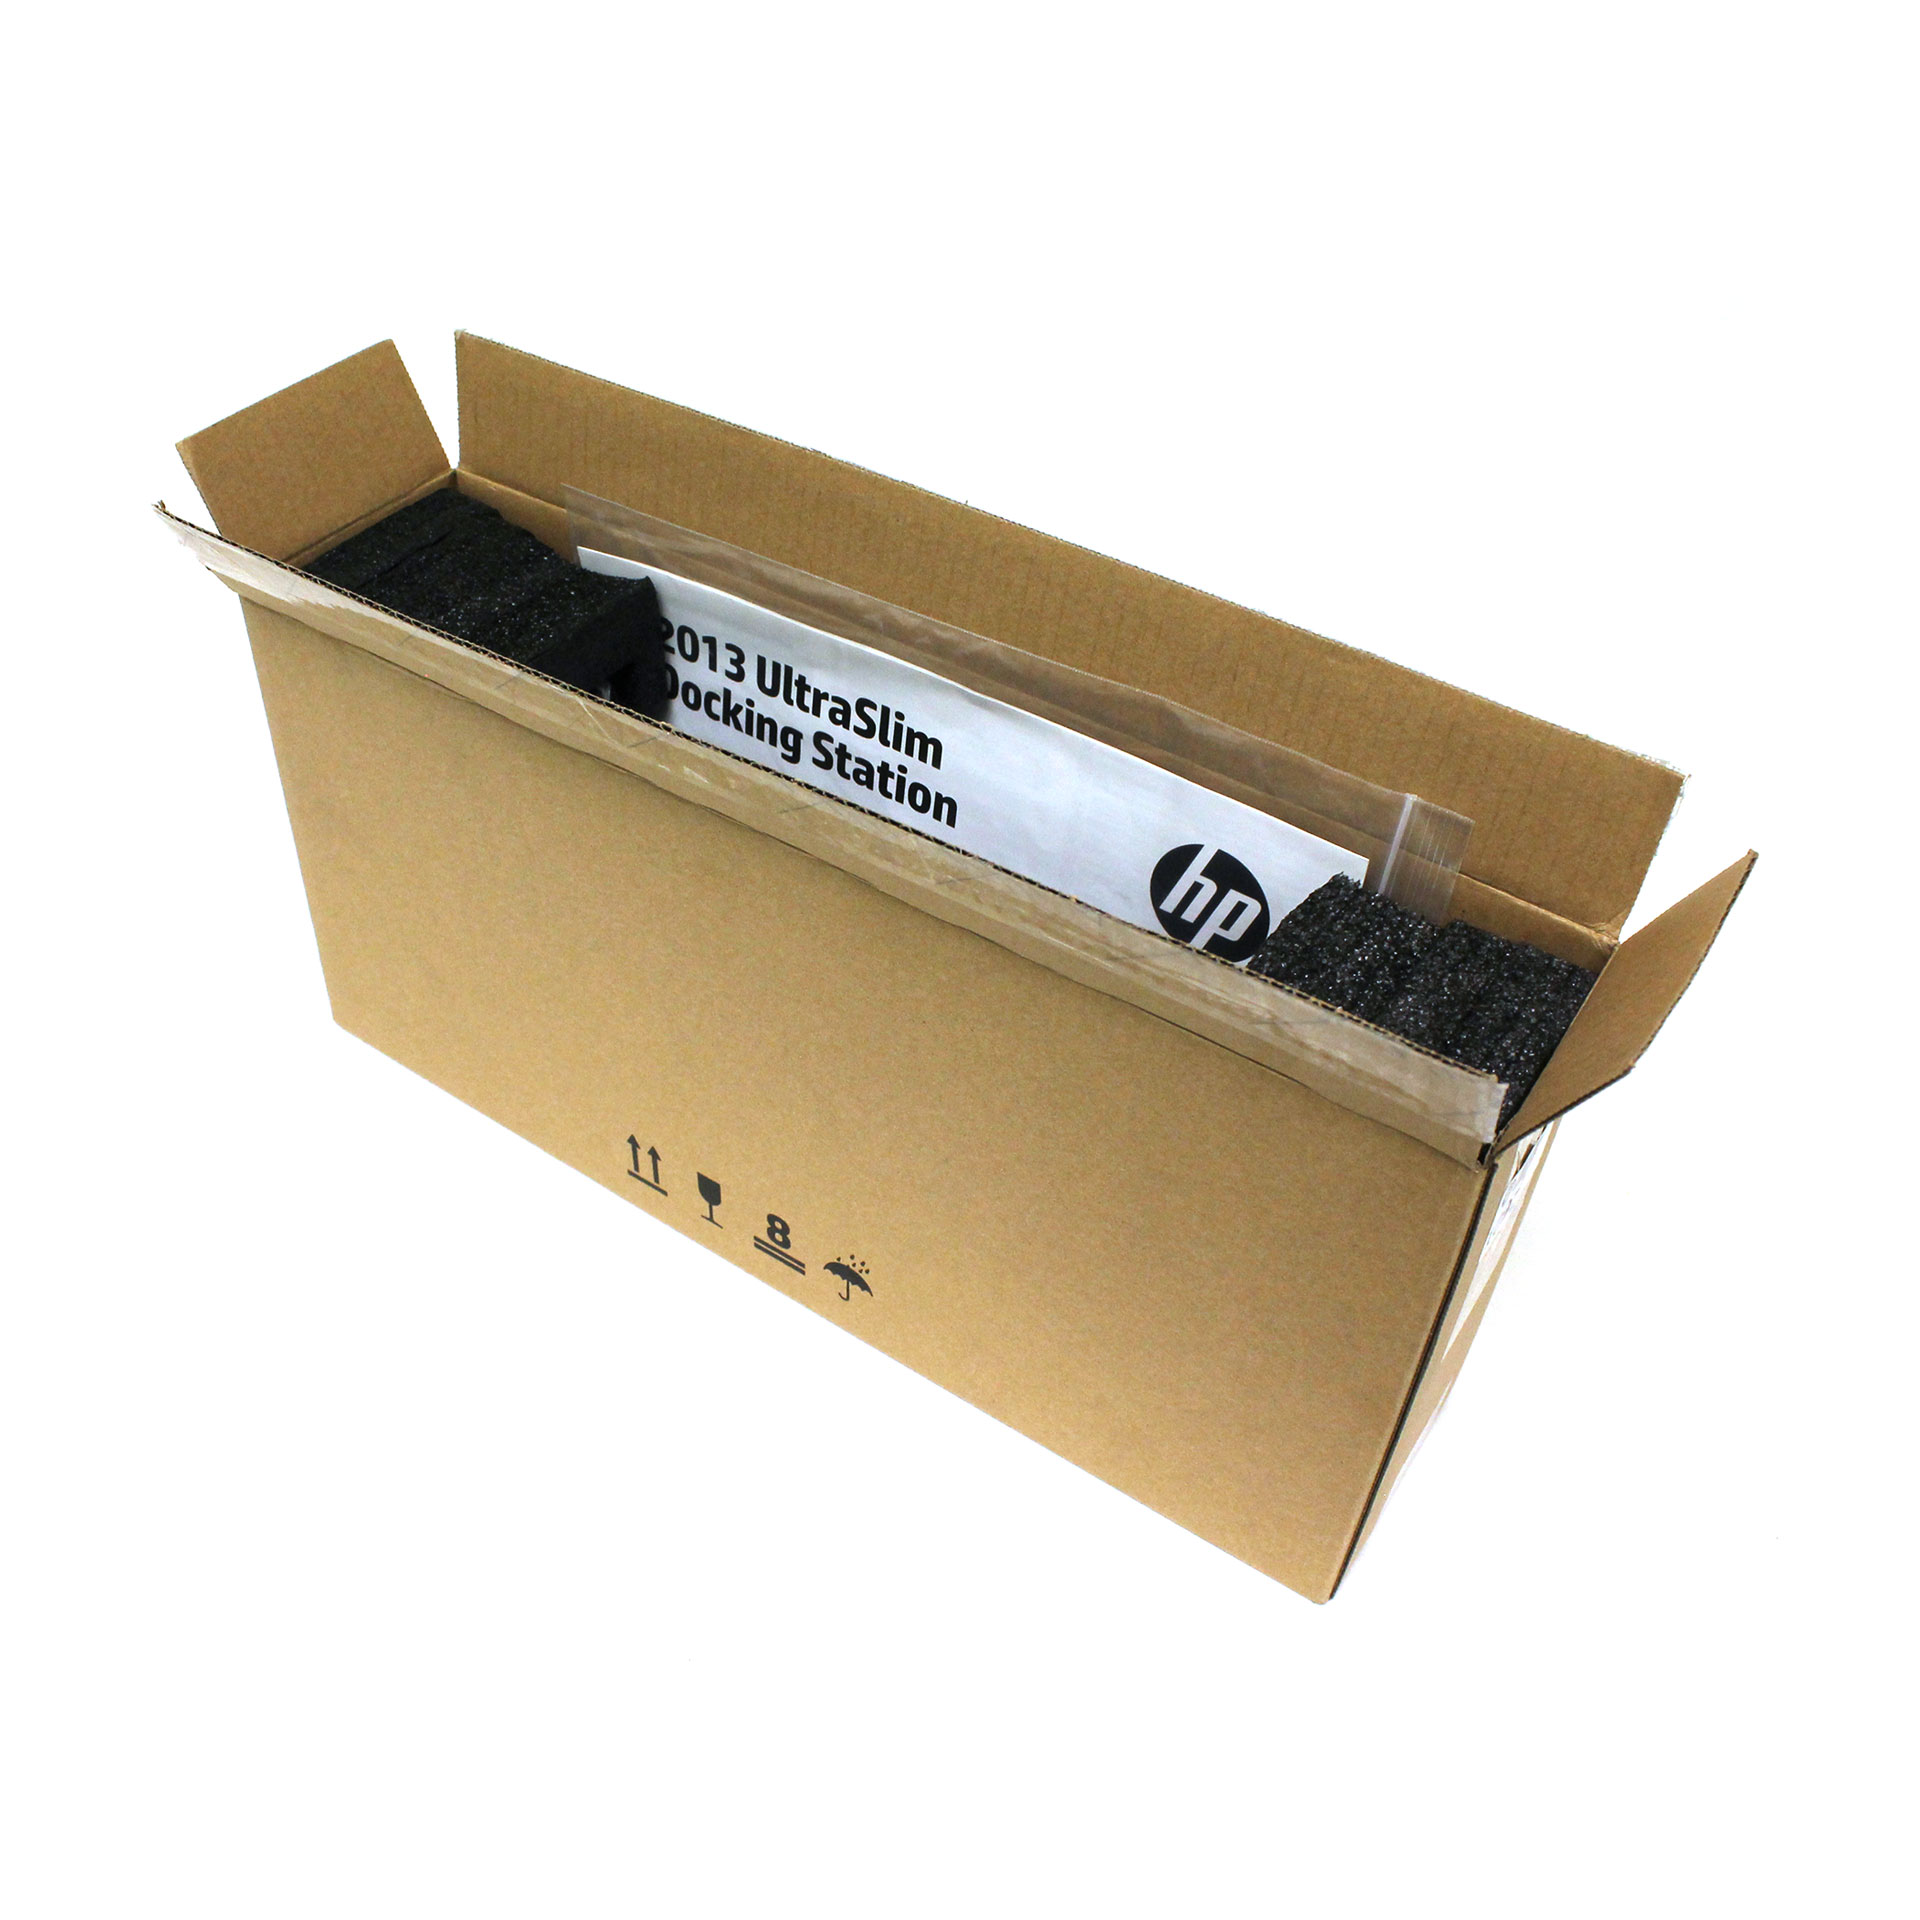 HP UltraSlim Docking Station 2013 G2 D9Y32UT#ABA fr HP EliteBook